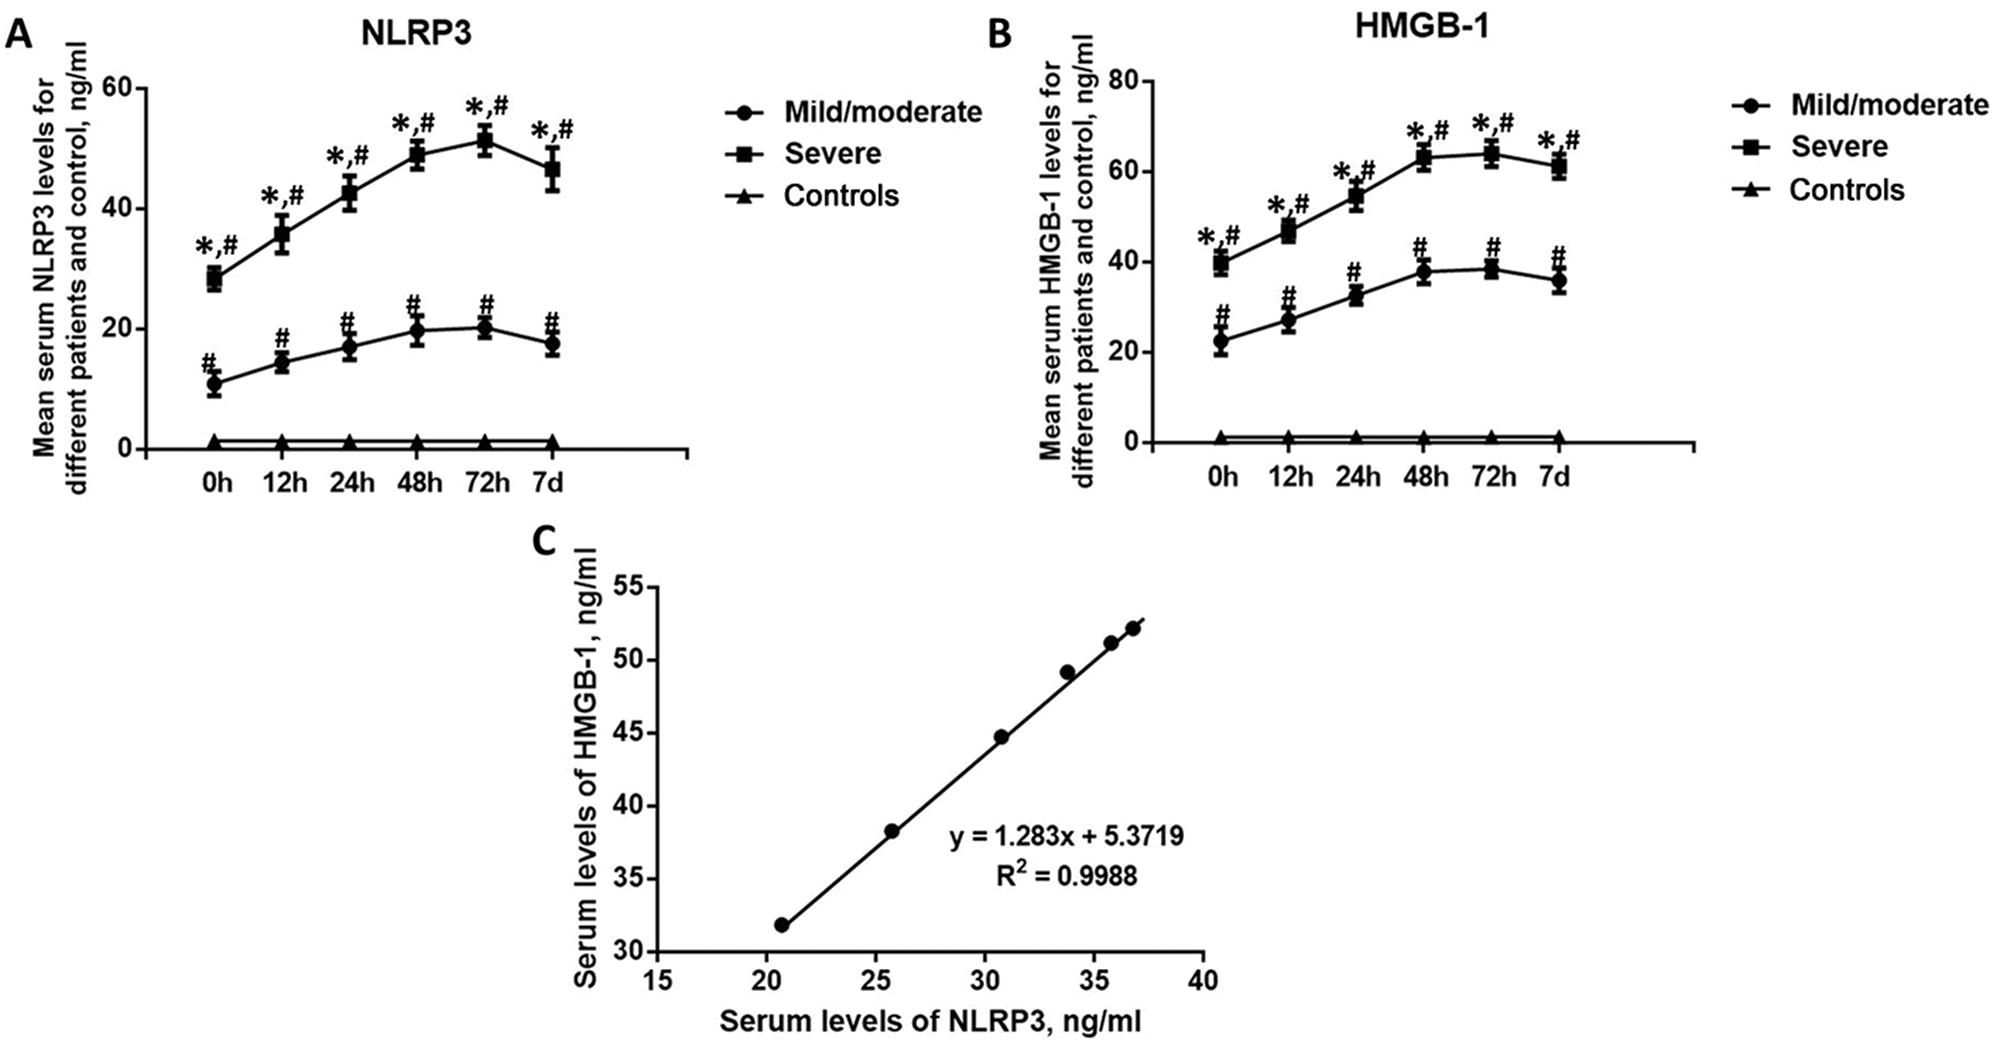 Dynamic changes in the serum levels of NLRP3 and HMGB-1 in BAT patients in different groups. A. Dynamic changes in the level of NLRP3; B. Dynamic changes in the level of HMGB-1; C. Correlation between the serum levels of NLRP3 and HMGB-1. *p<0.05, compared with the mild/moderate group; #p<0.05, compared with the controls.